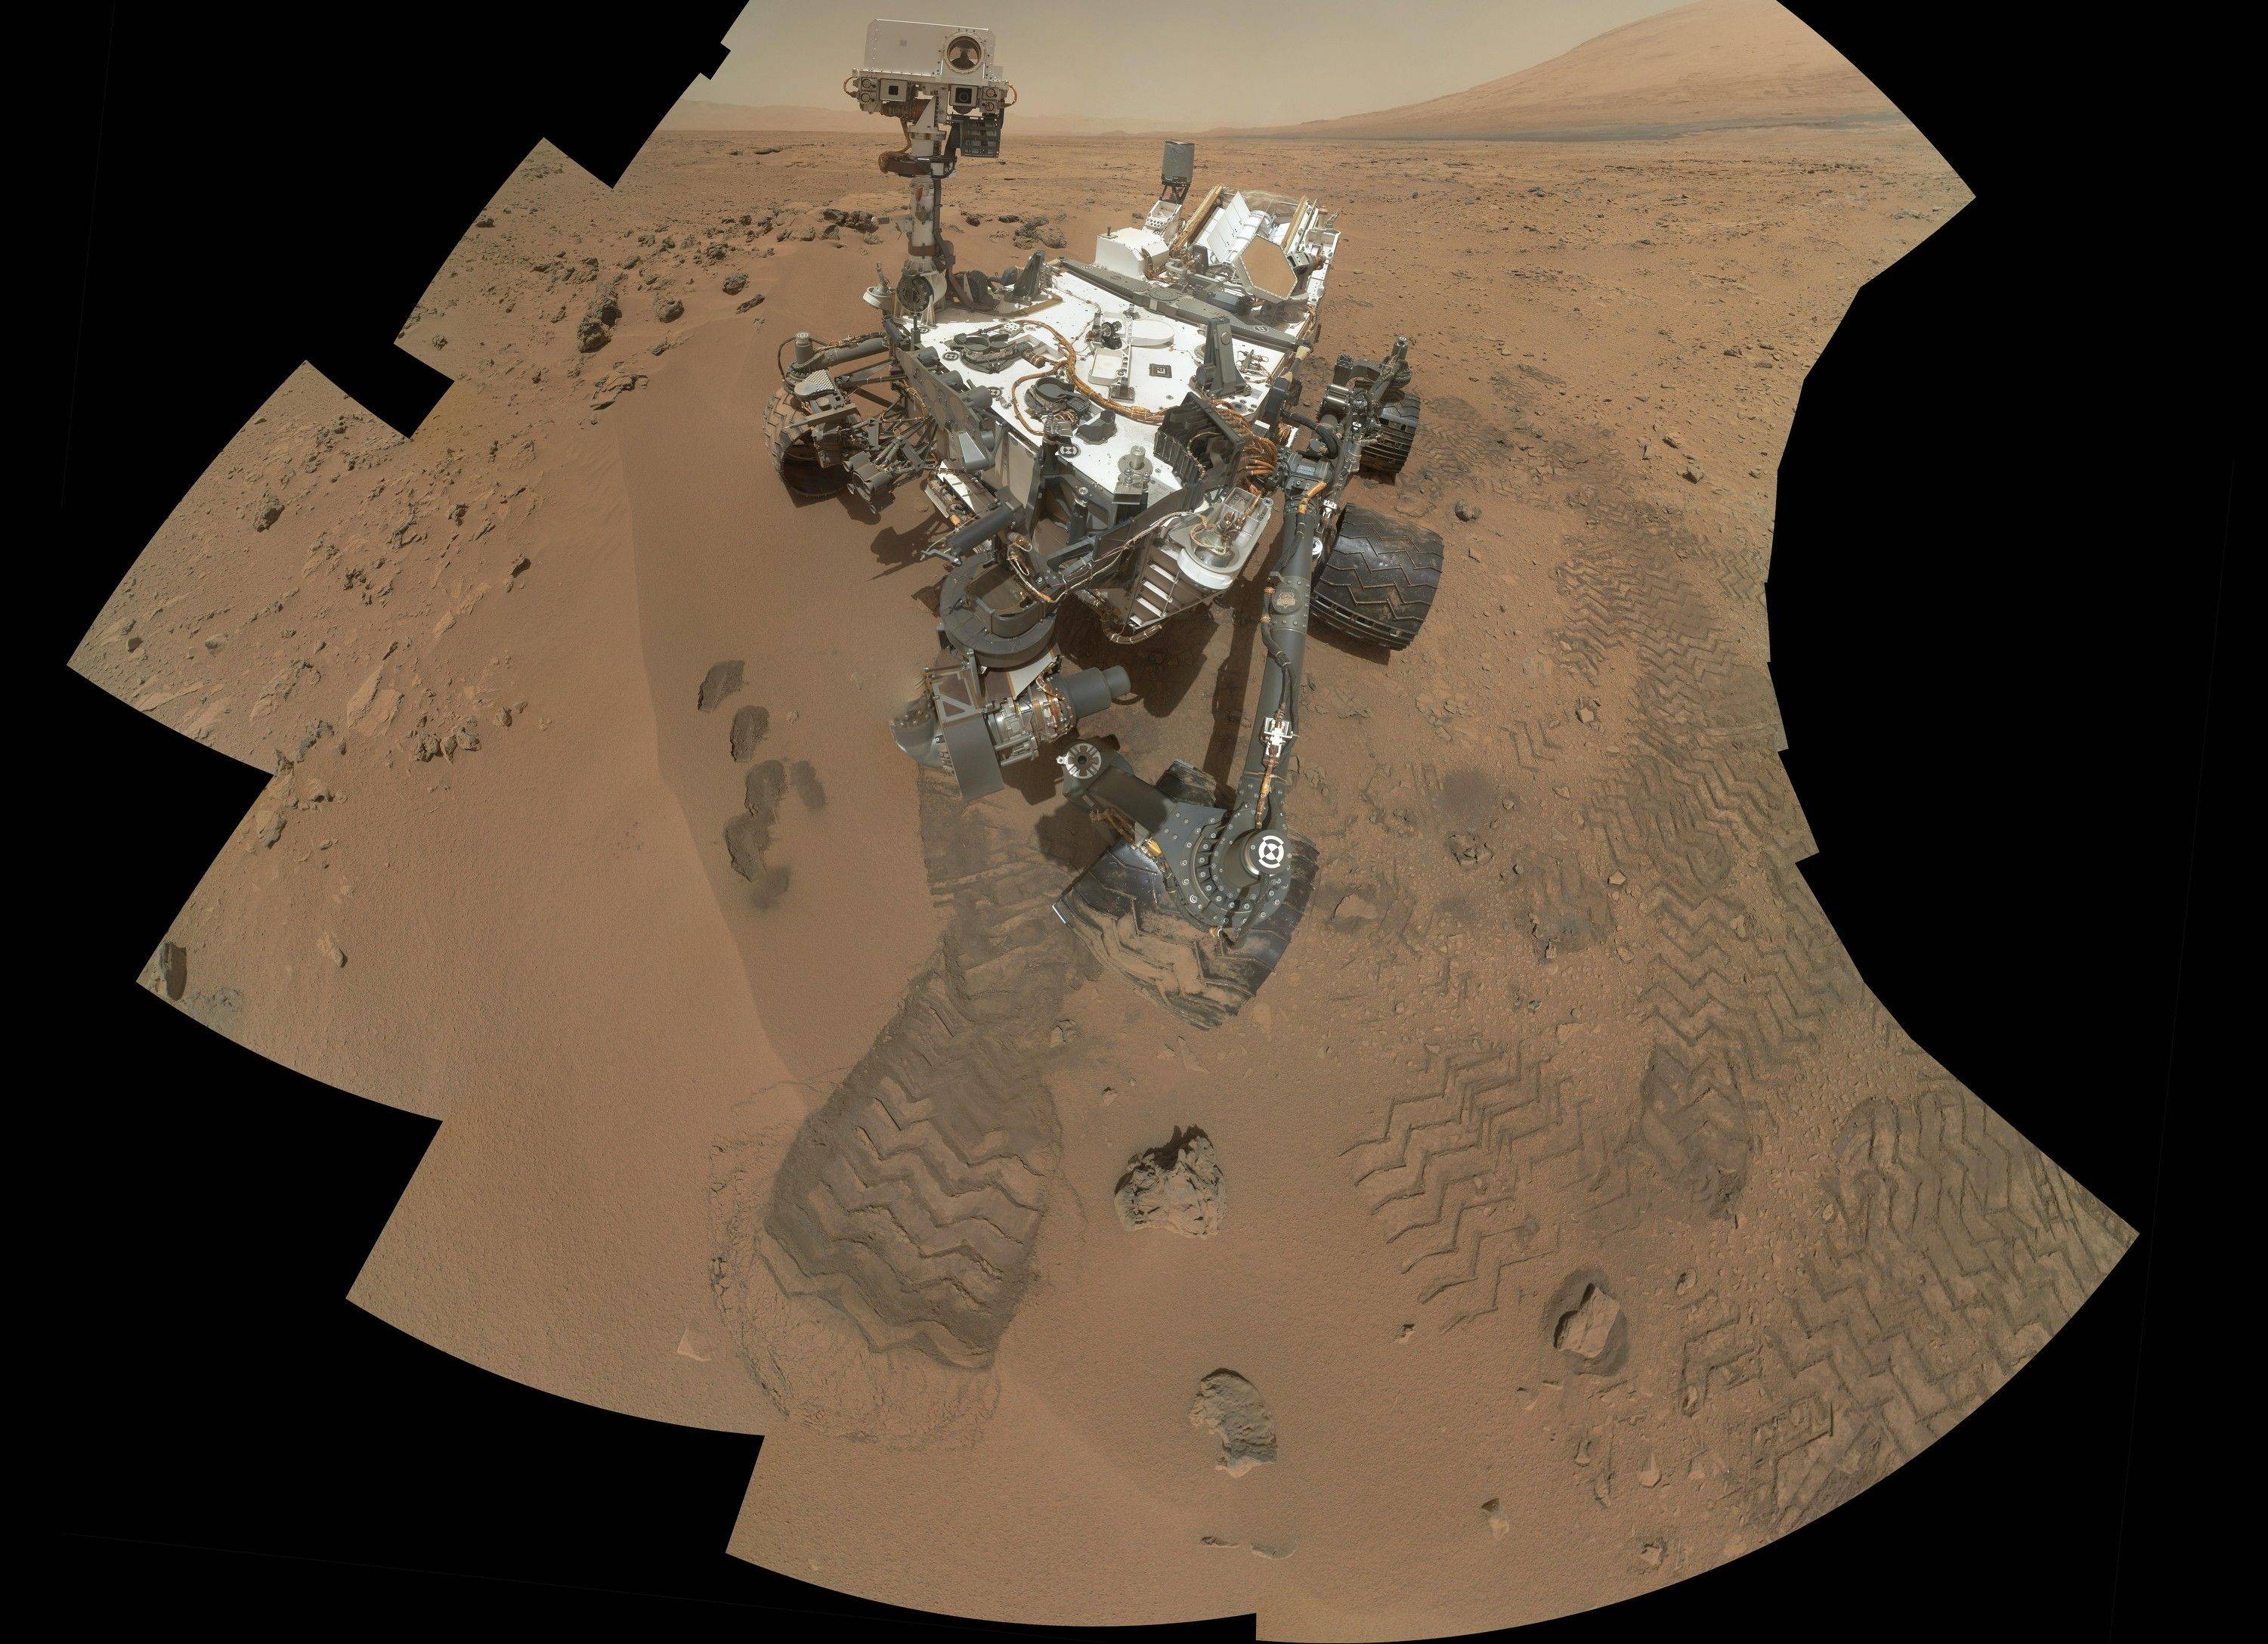 This image released by NASA shows the work site of the NASA's rover Curiosity on Mars. Results are in from the first test of Martian soil.